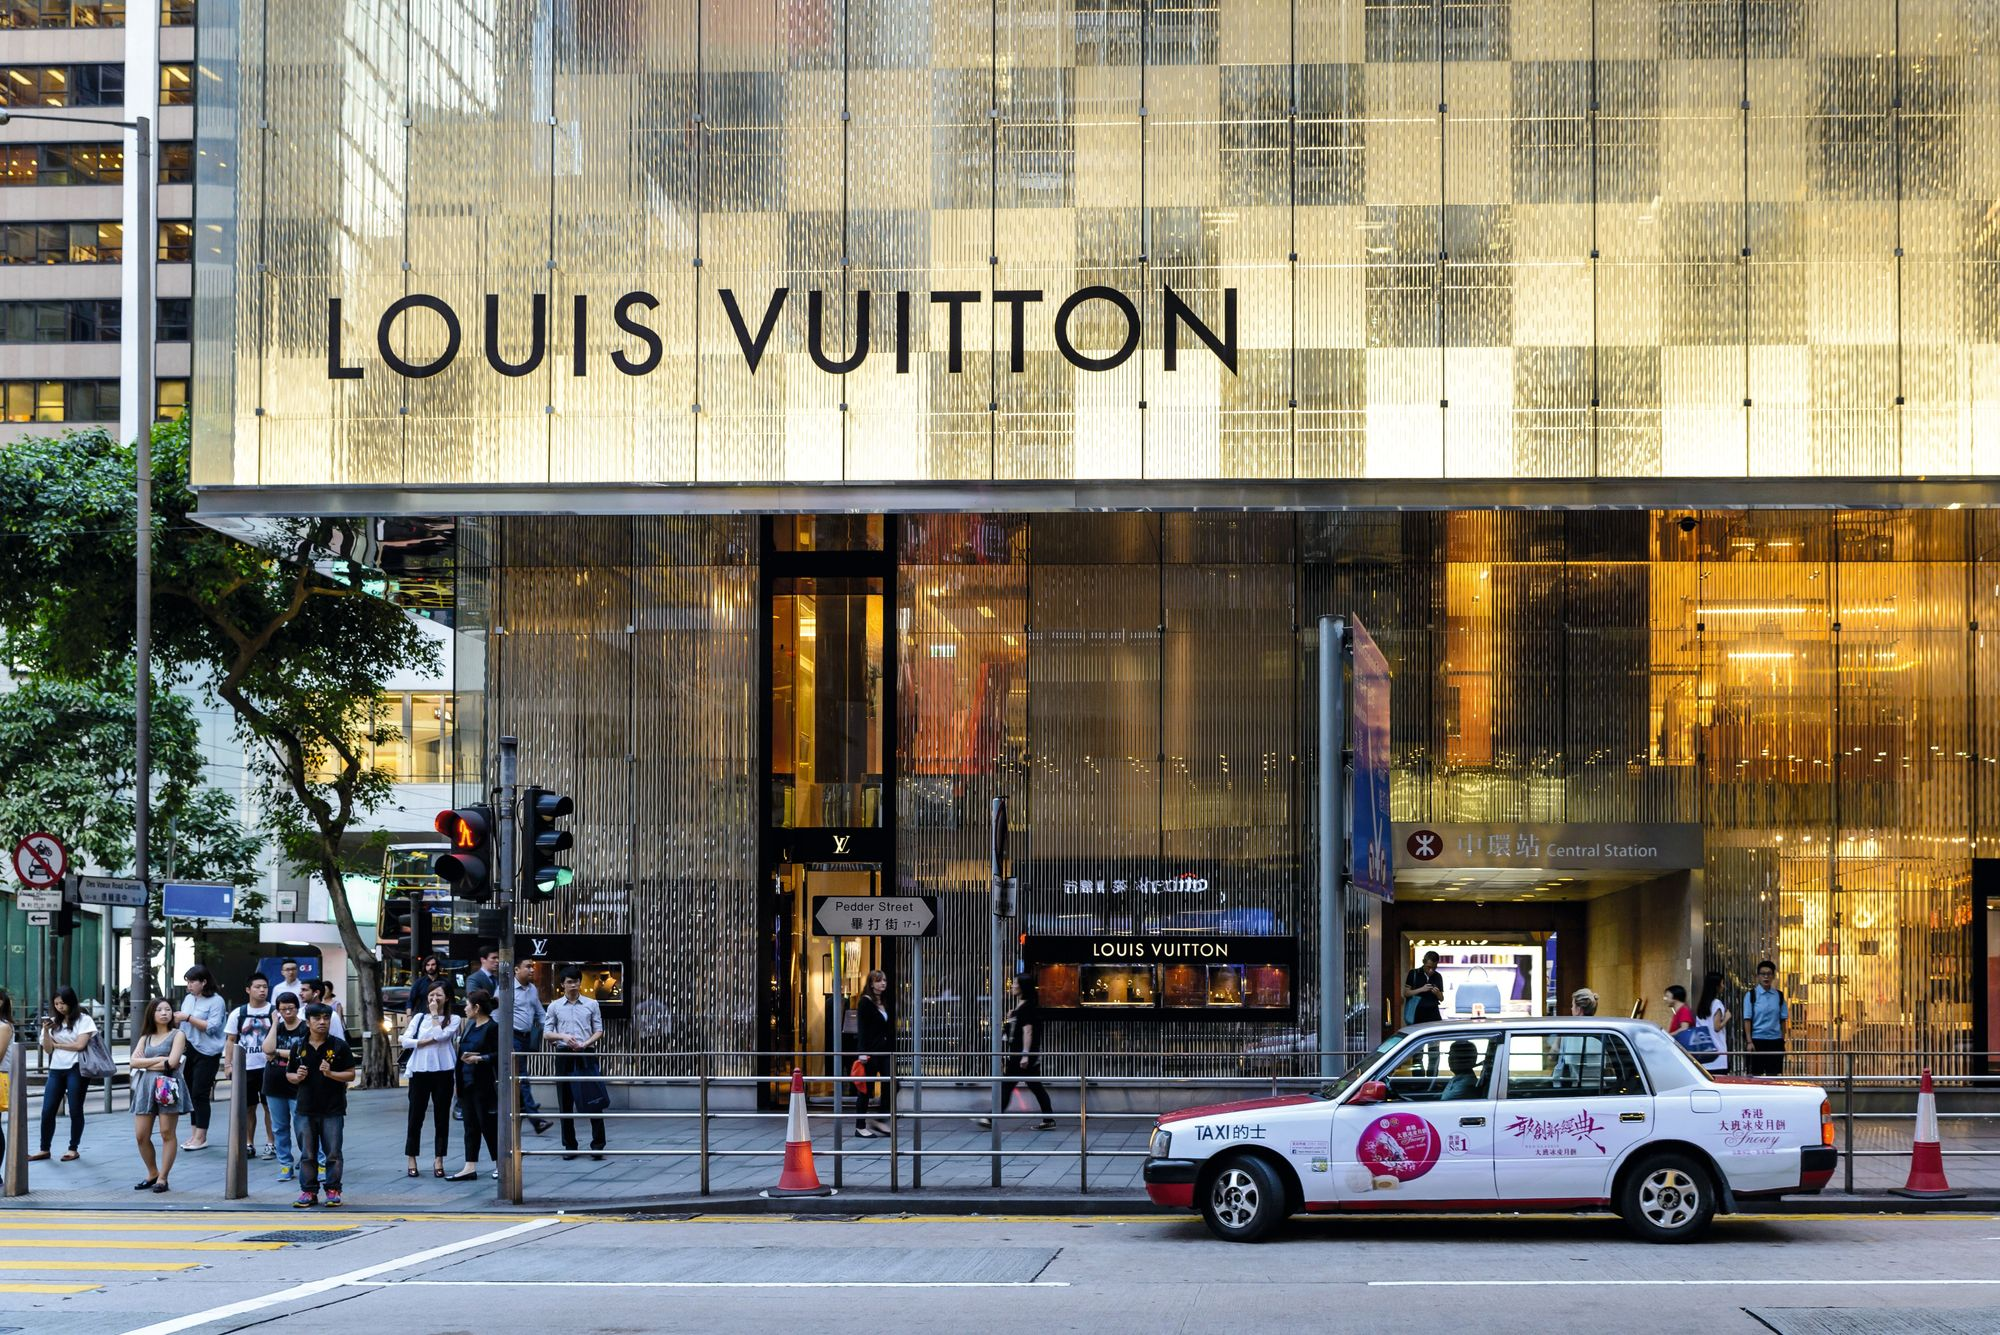 Louis Vuitton Chine